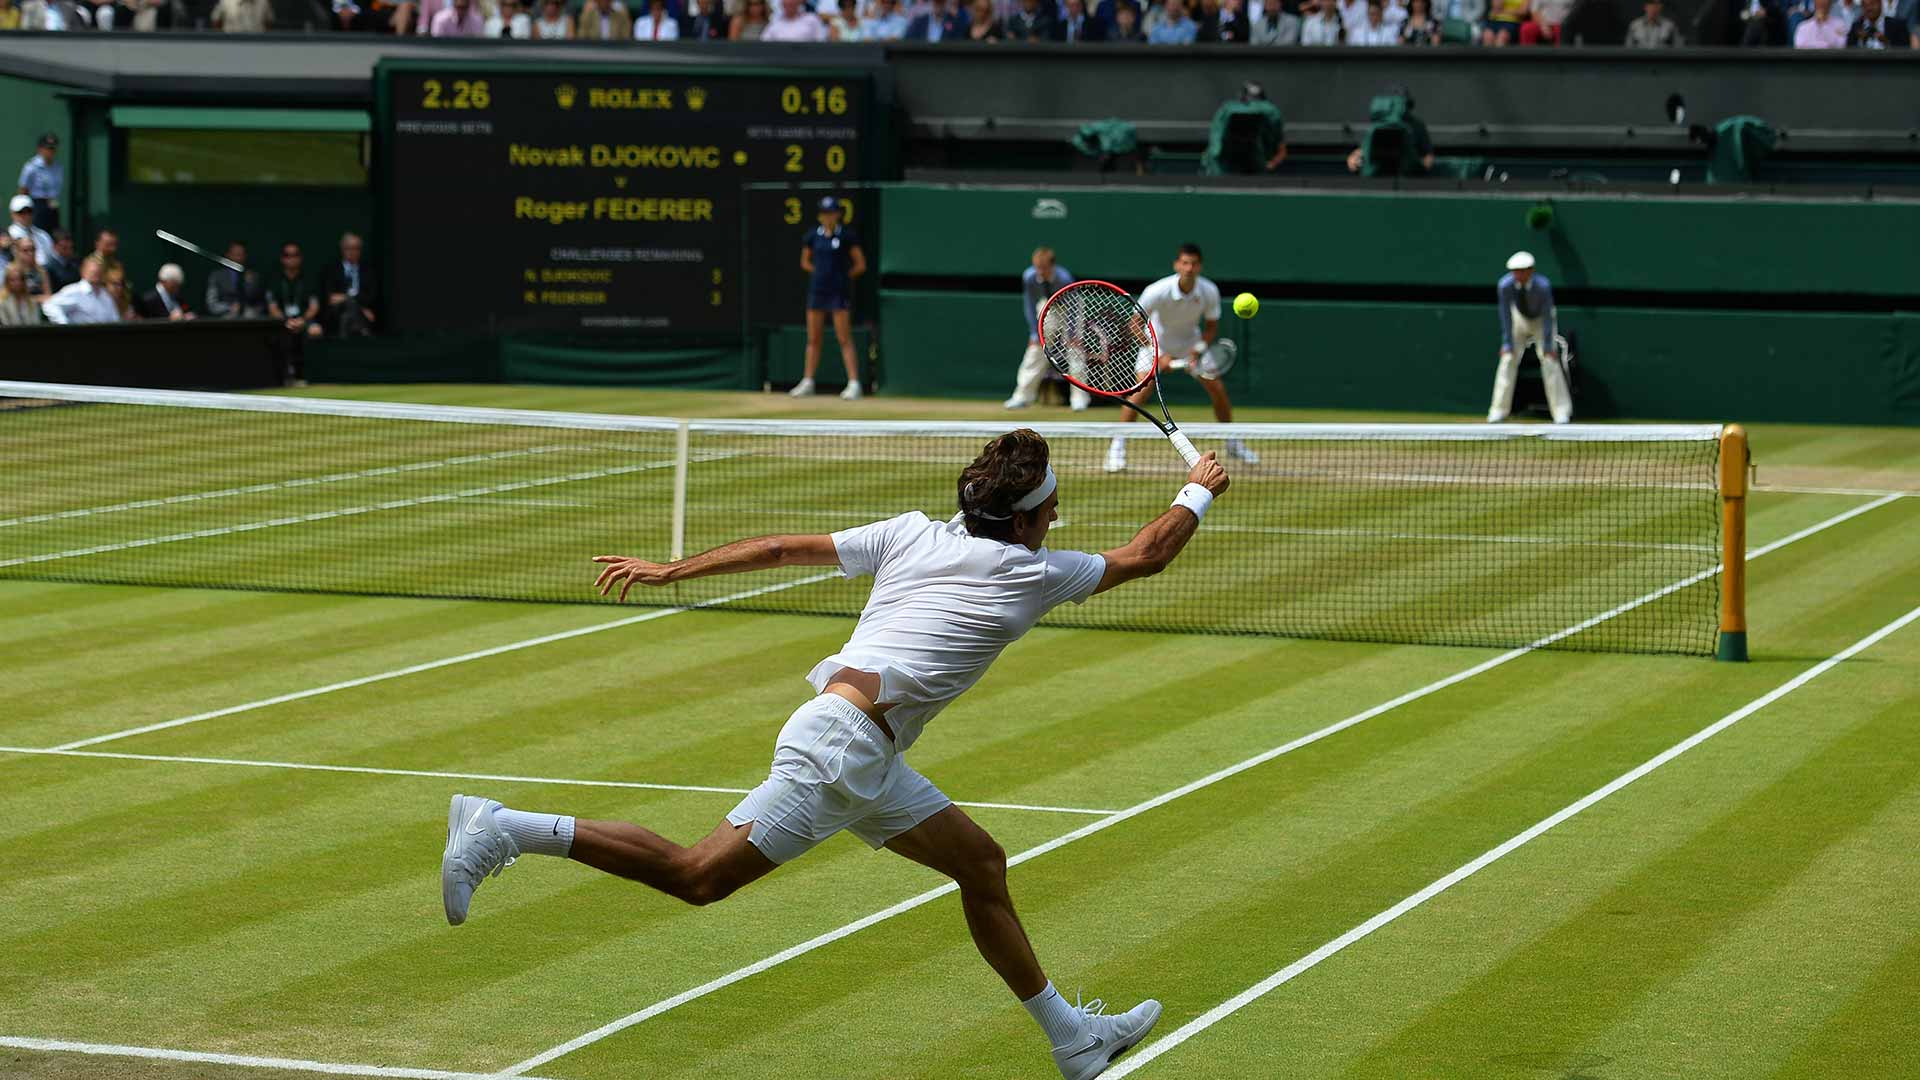 Two tennis players playing on centre court at Wimbledon.